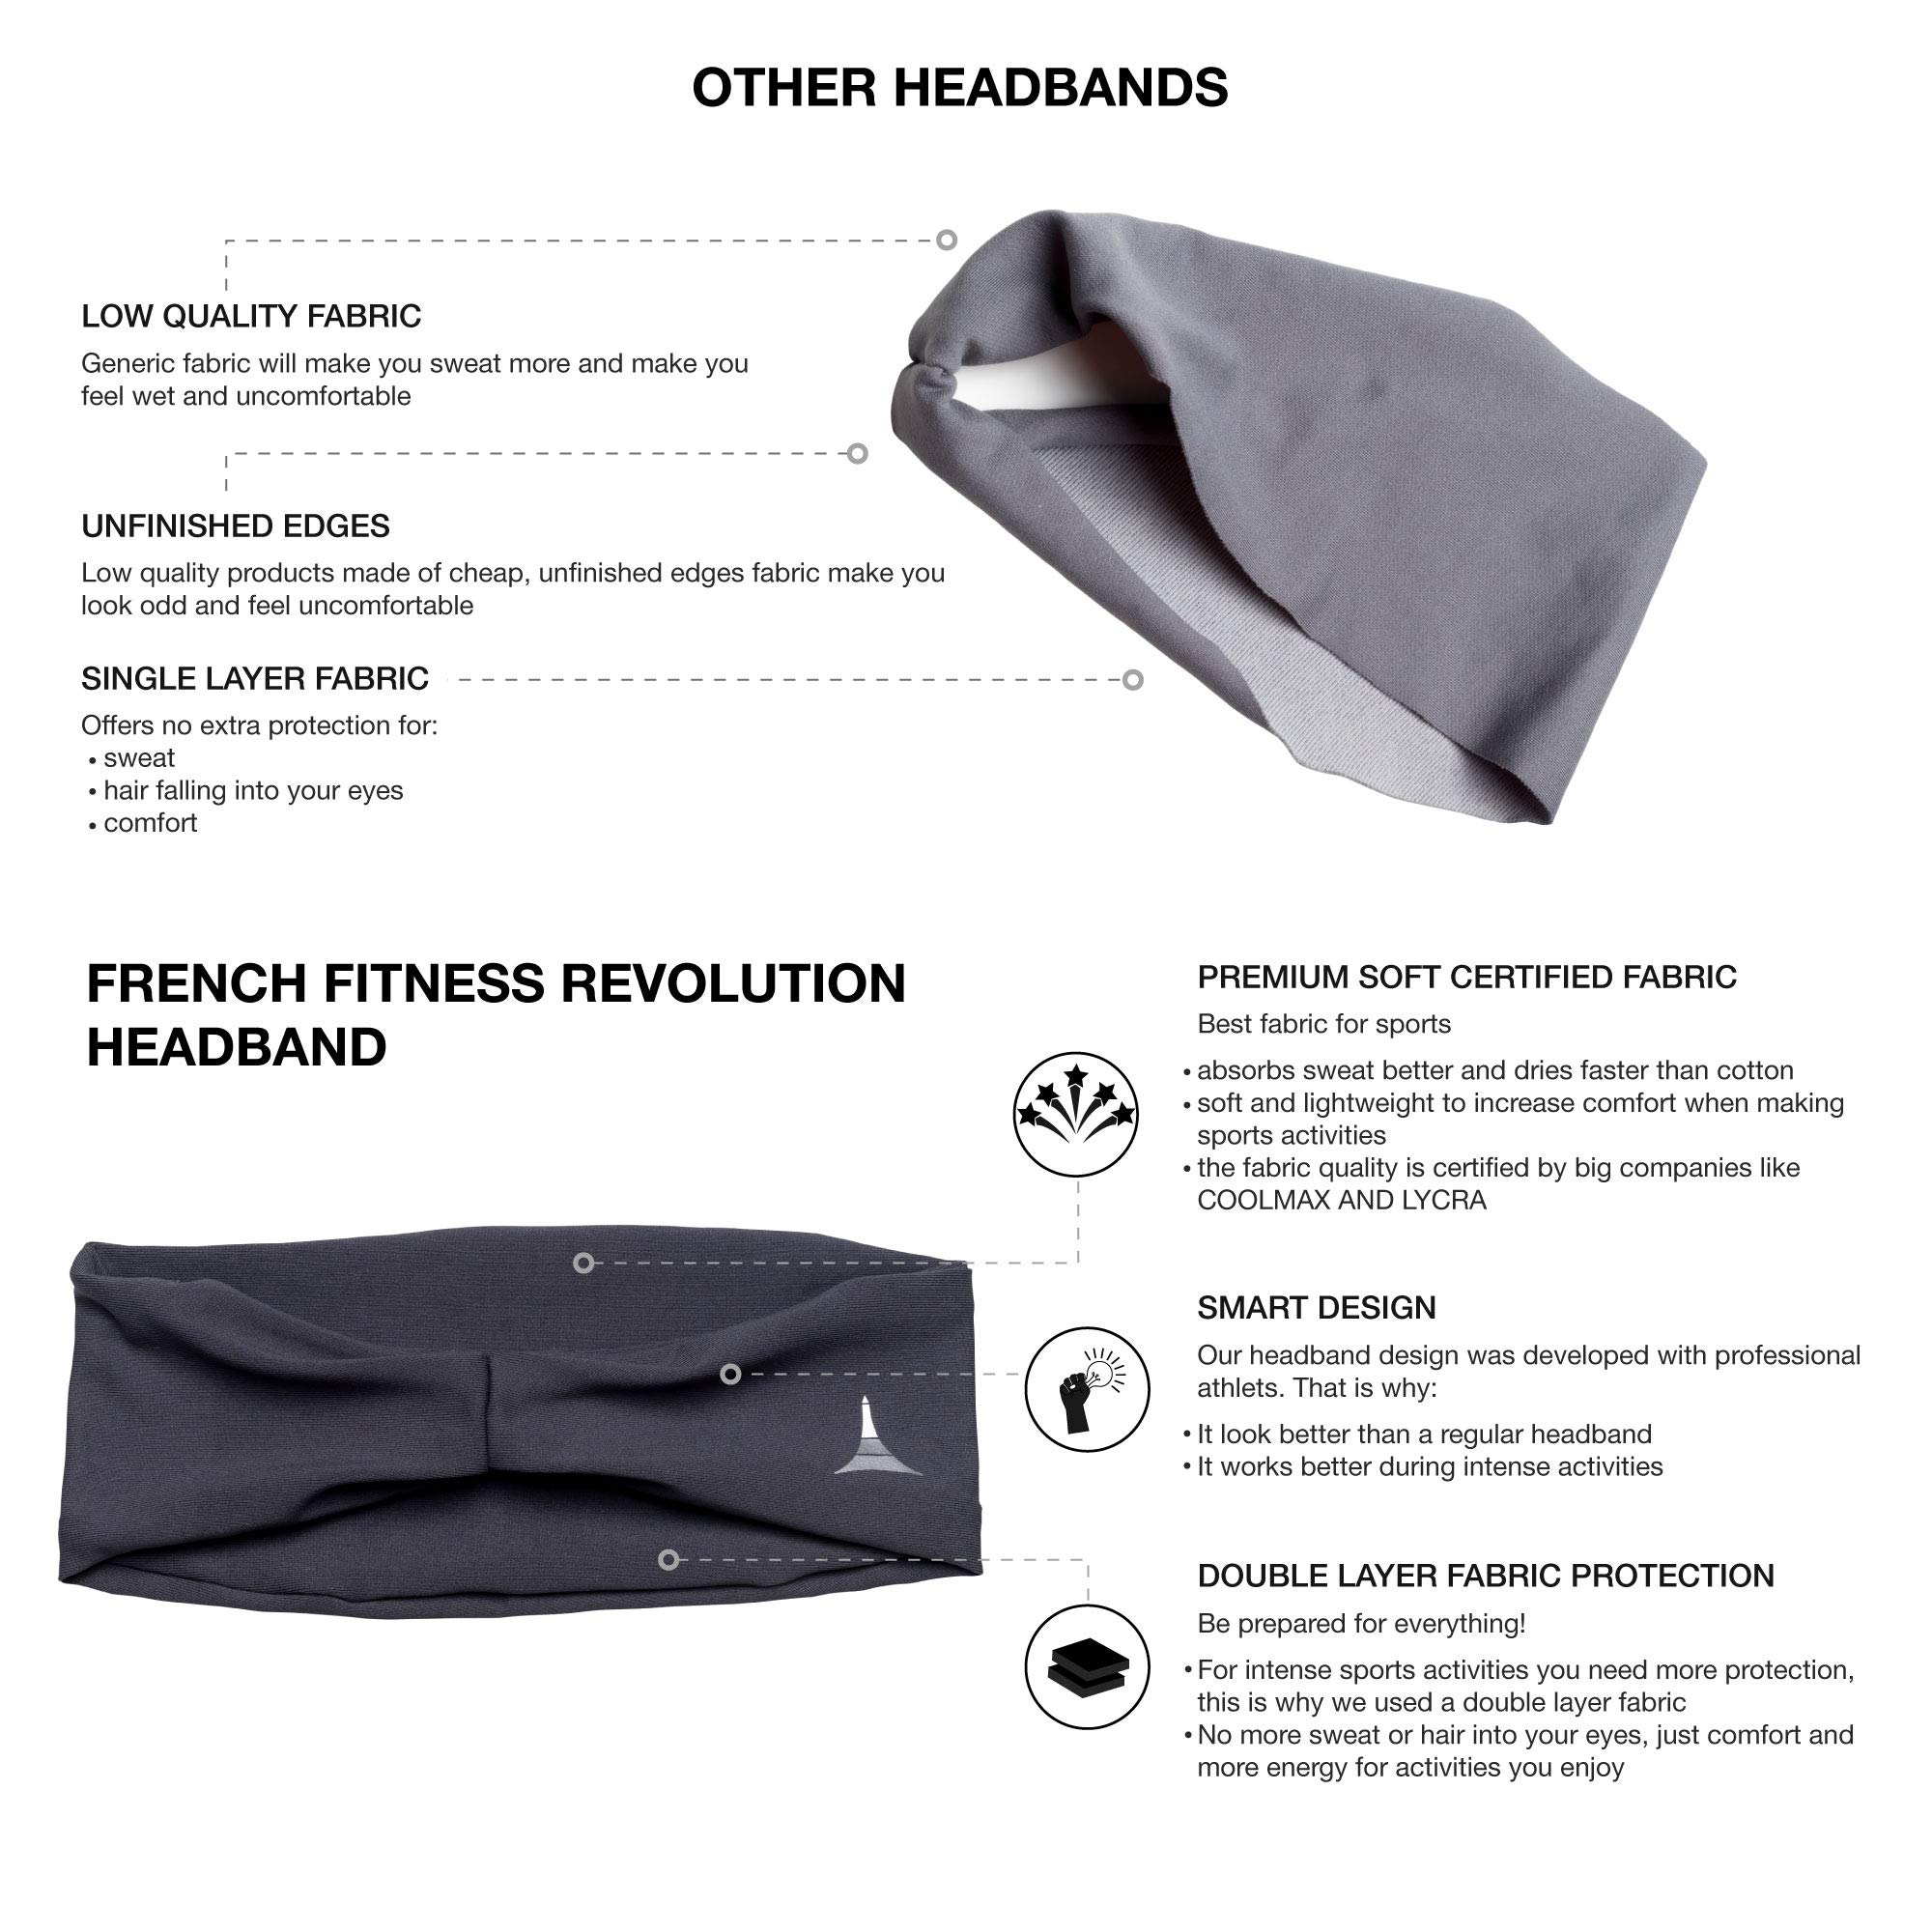 French Fitness Revolution Mens Headband - Guys Sweatband & Sports Headband for Running, Crossfit, Working Out and Dominating Your Competition - Performance Stretch & Moisture Wicking by French Fitness Revolution (Image #7)